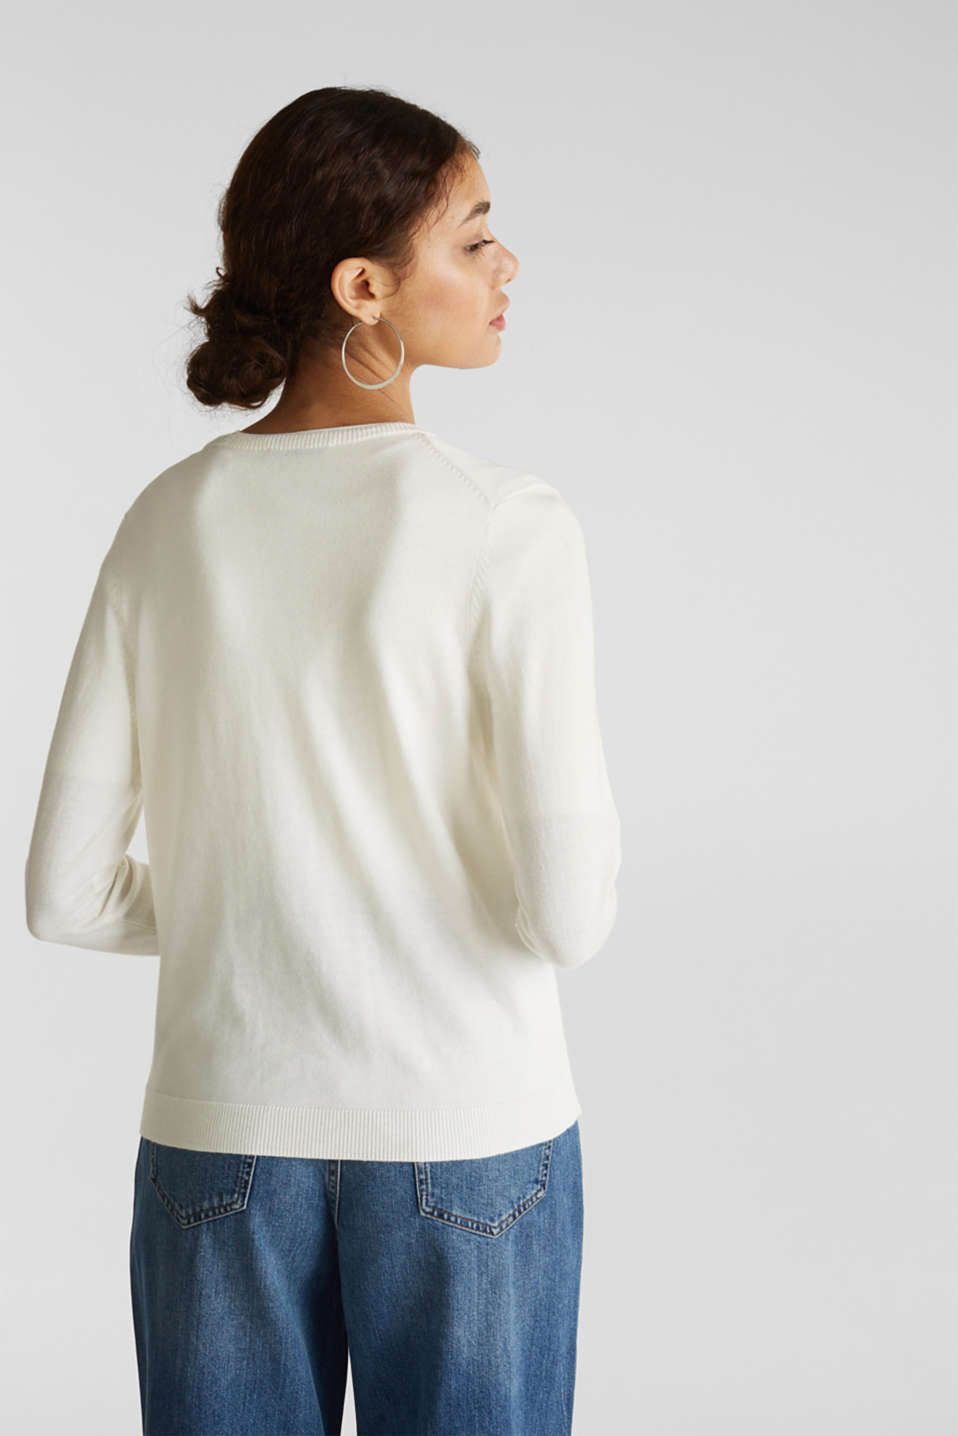 Fine-knit blended cotton cardigan, OFF WHITE, detail image number 3